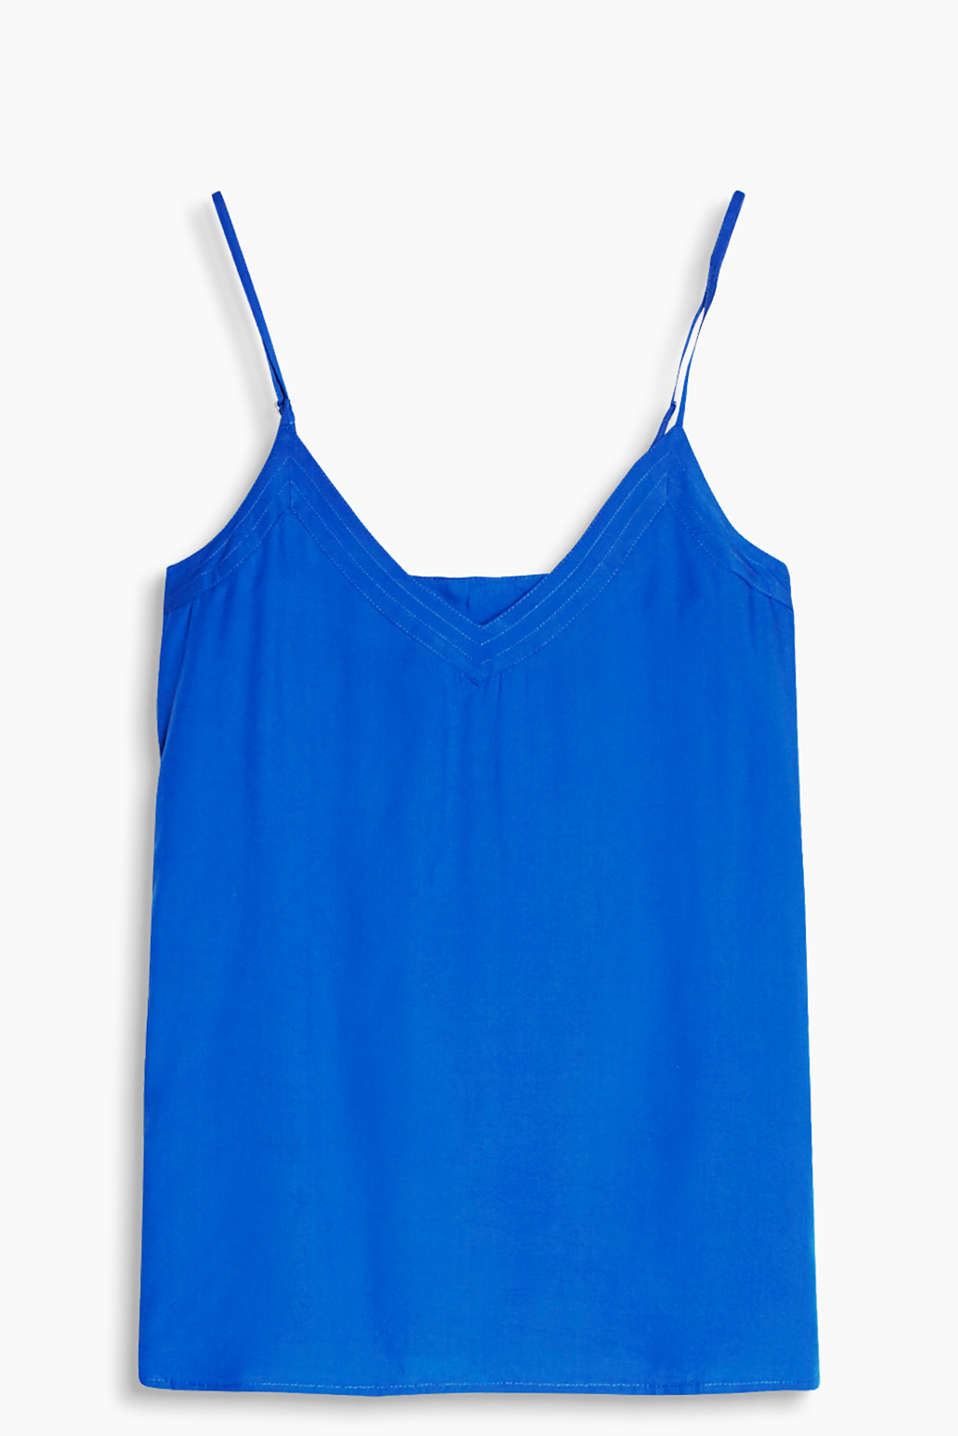 Floaty top with a generous V-neck and adjustable spaghetti straps